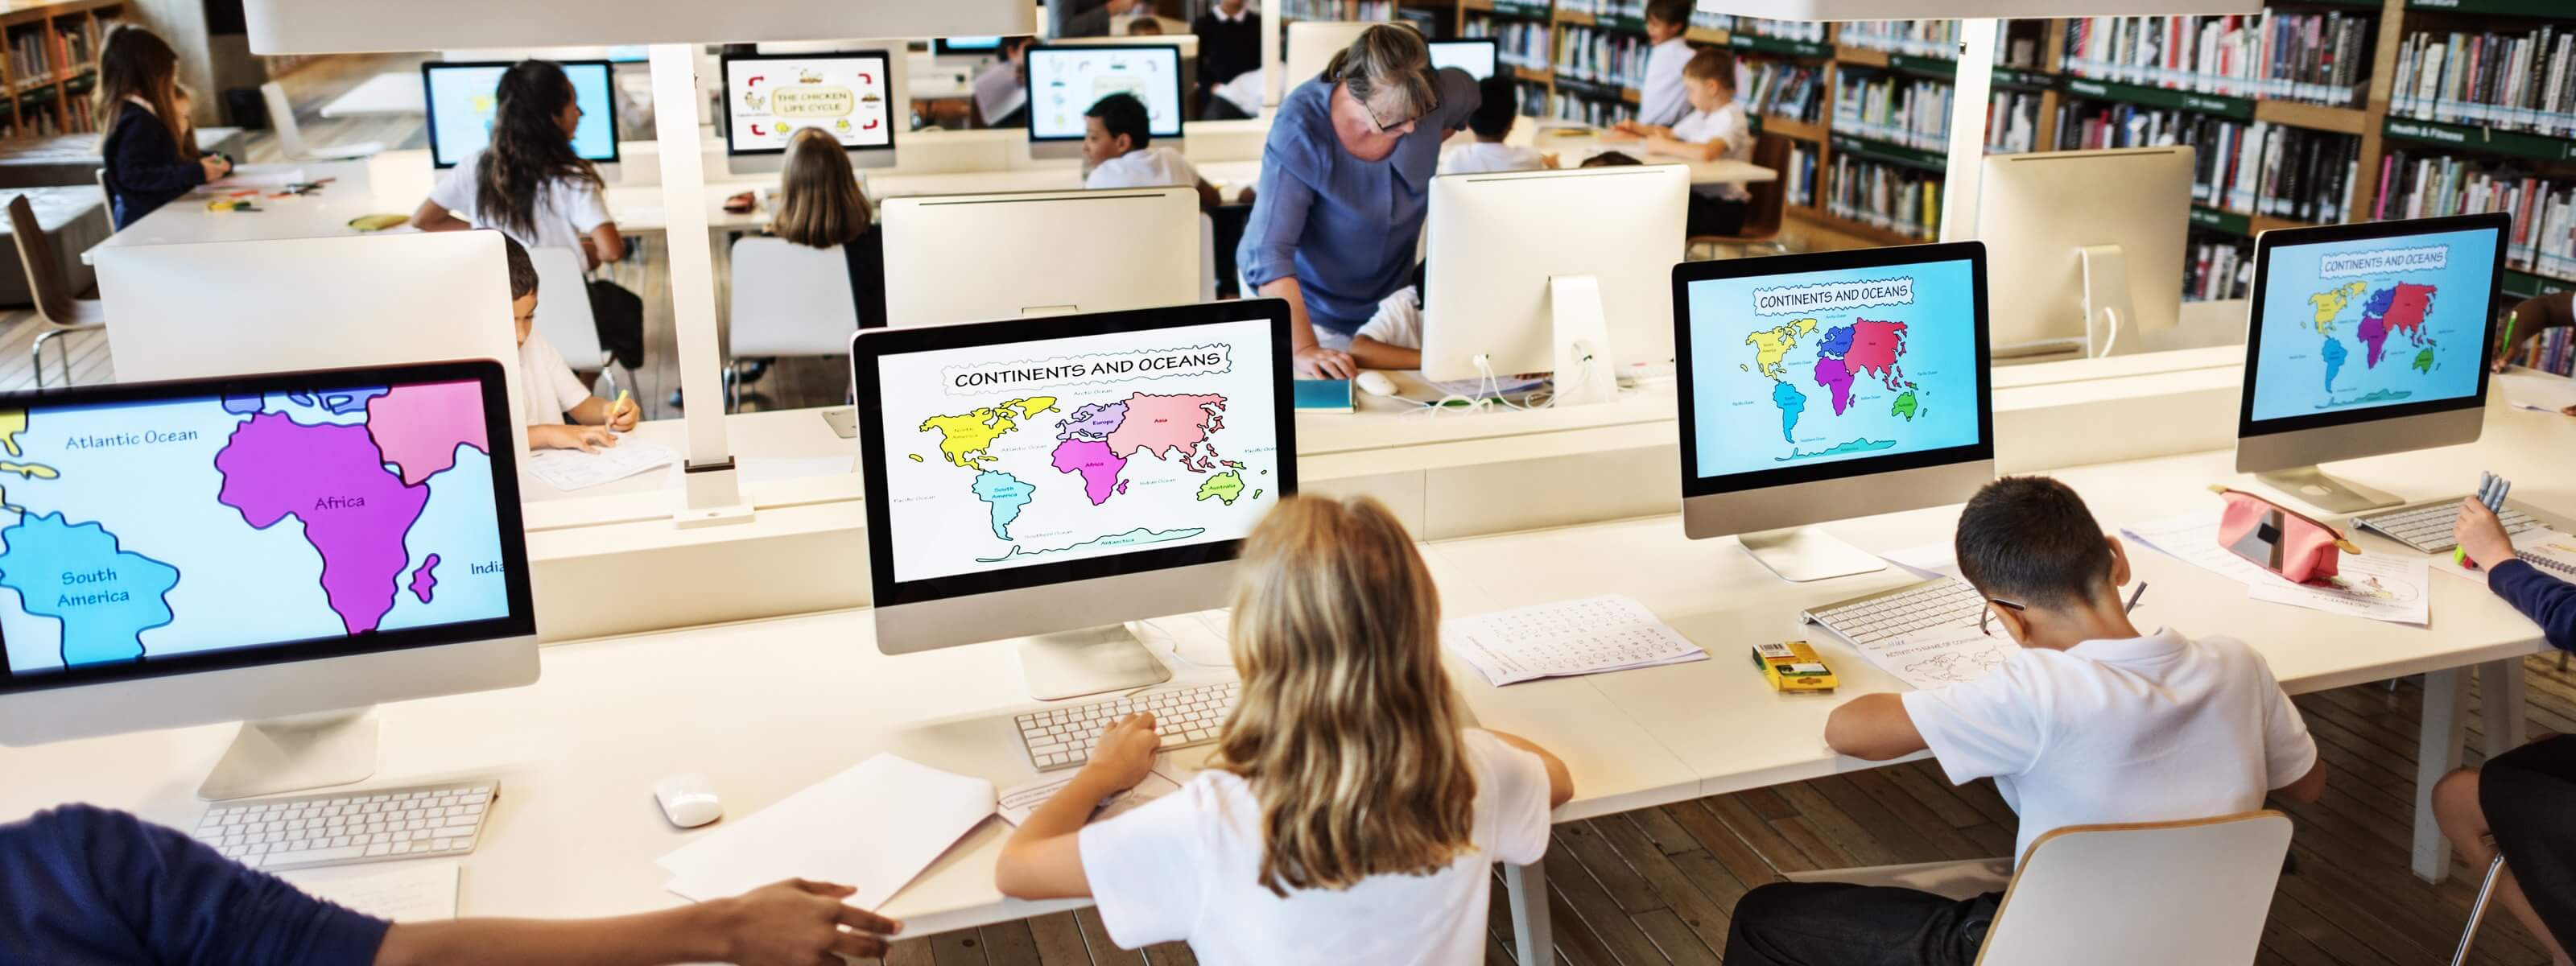 School children using iMacs